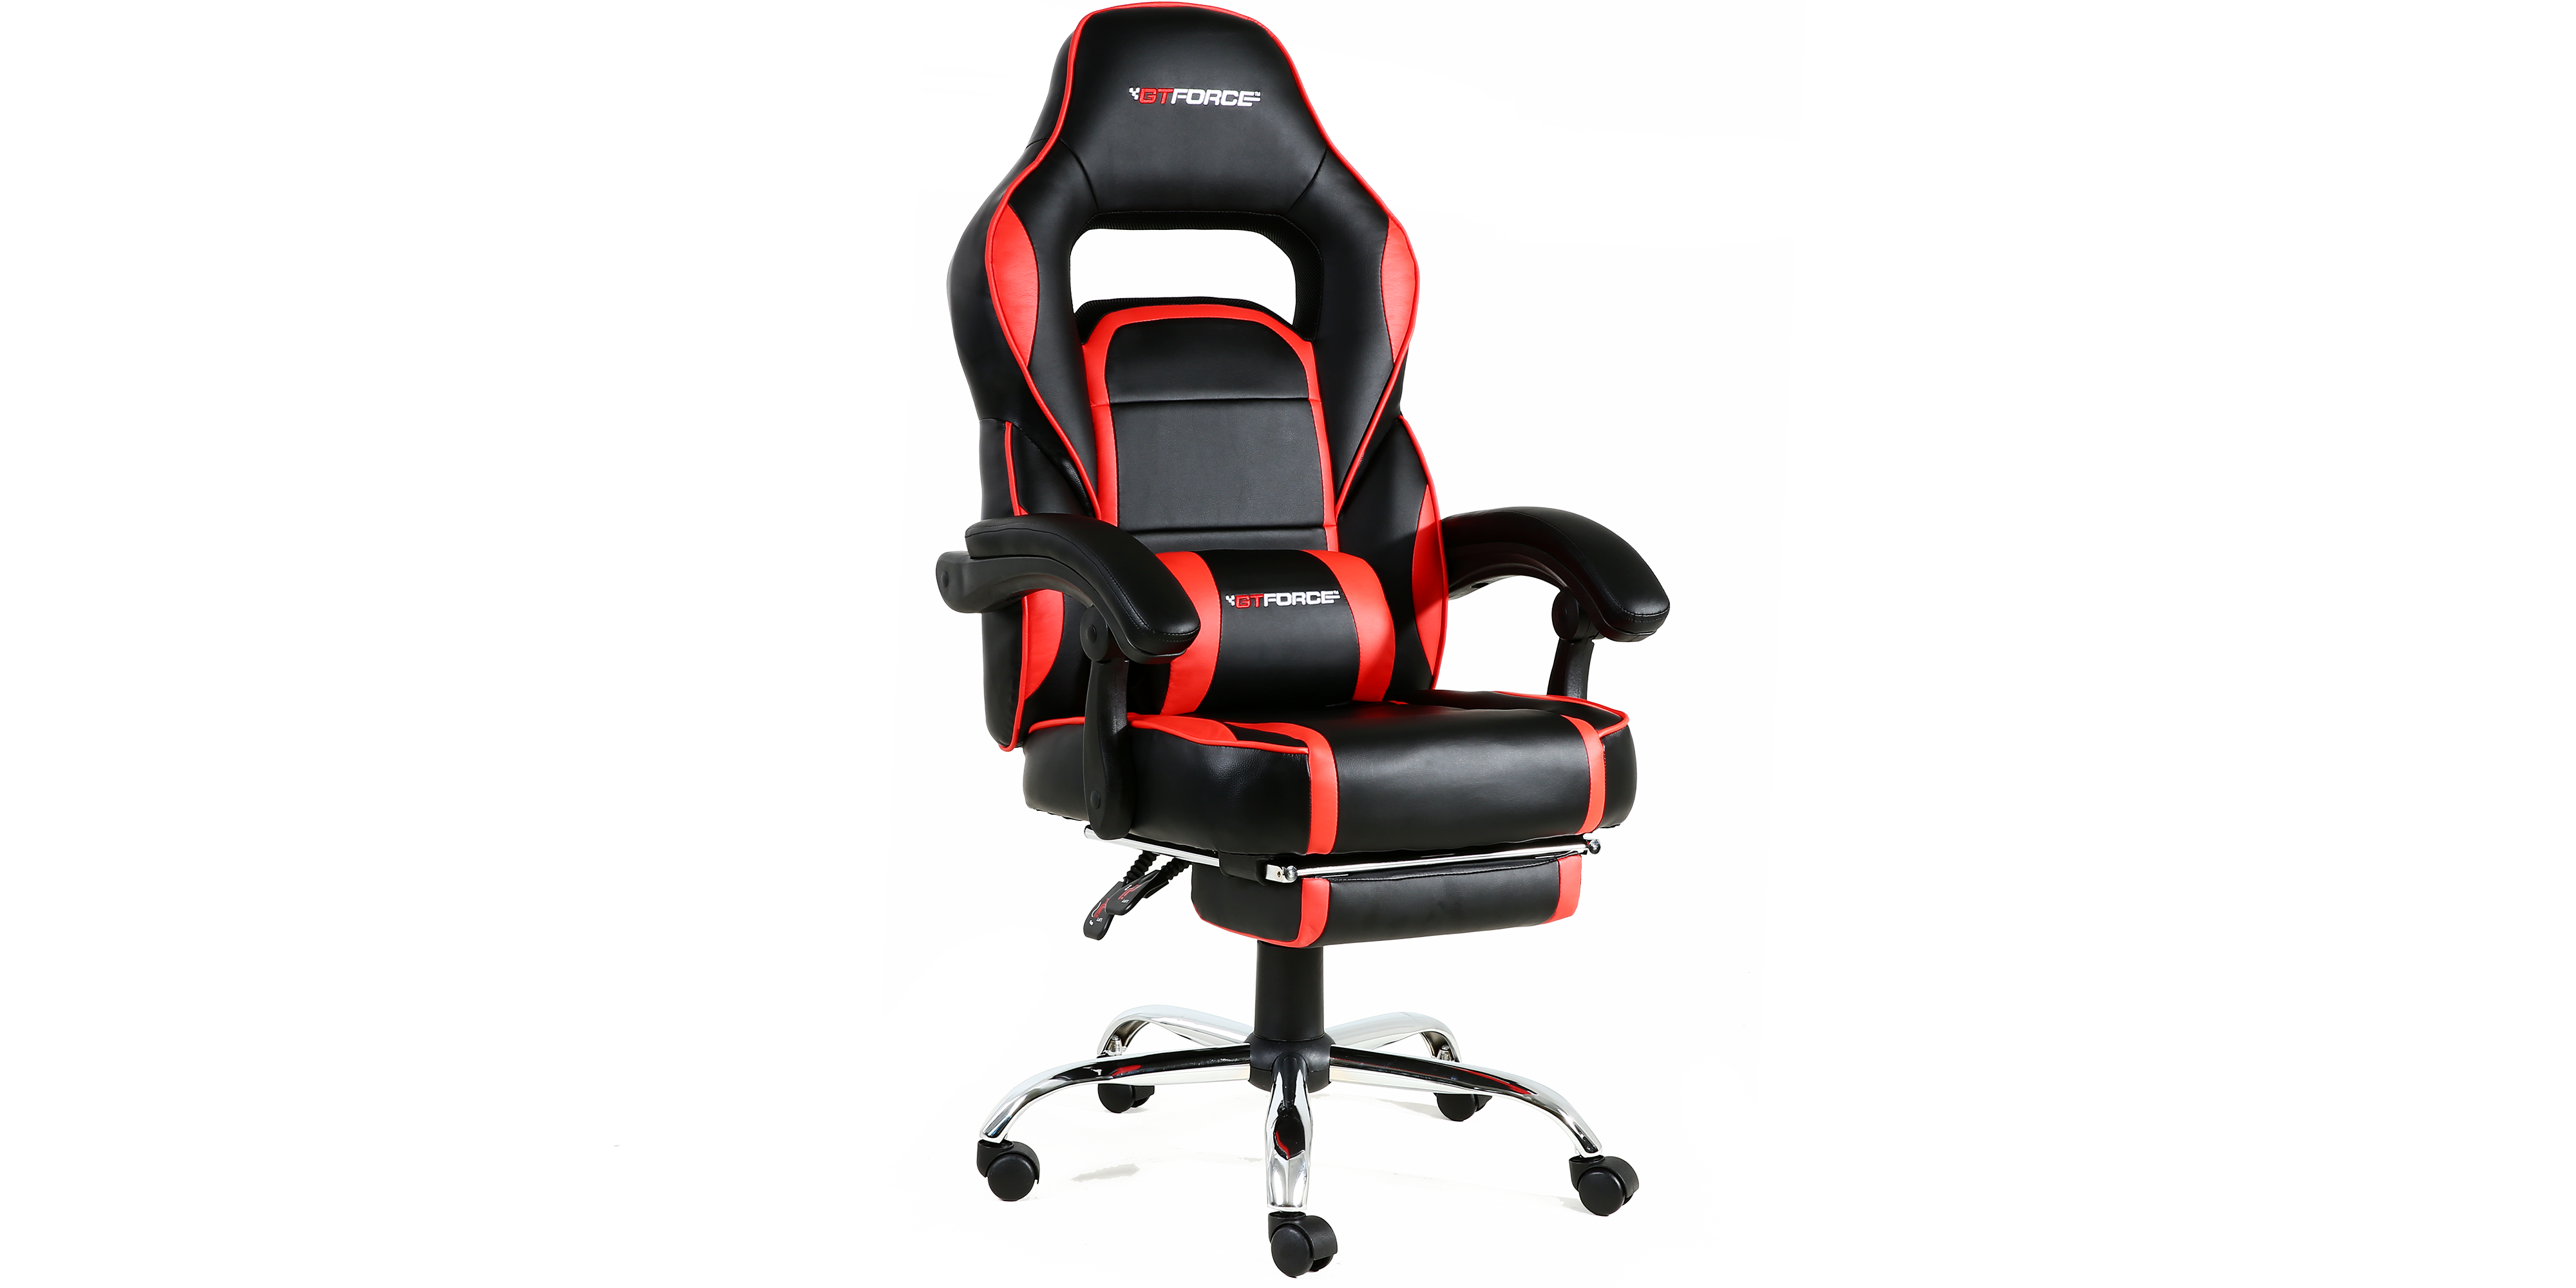 Pace Gaming Chair With Recline And Footrest In Black Red